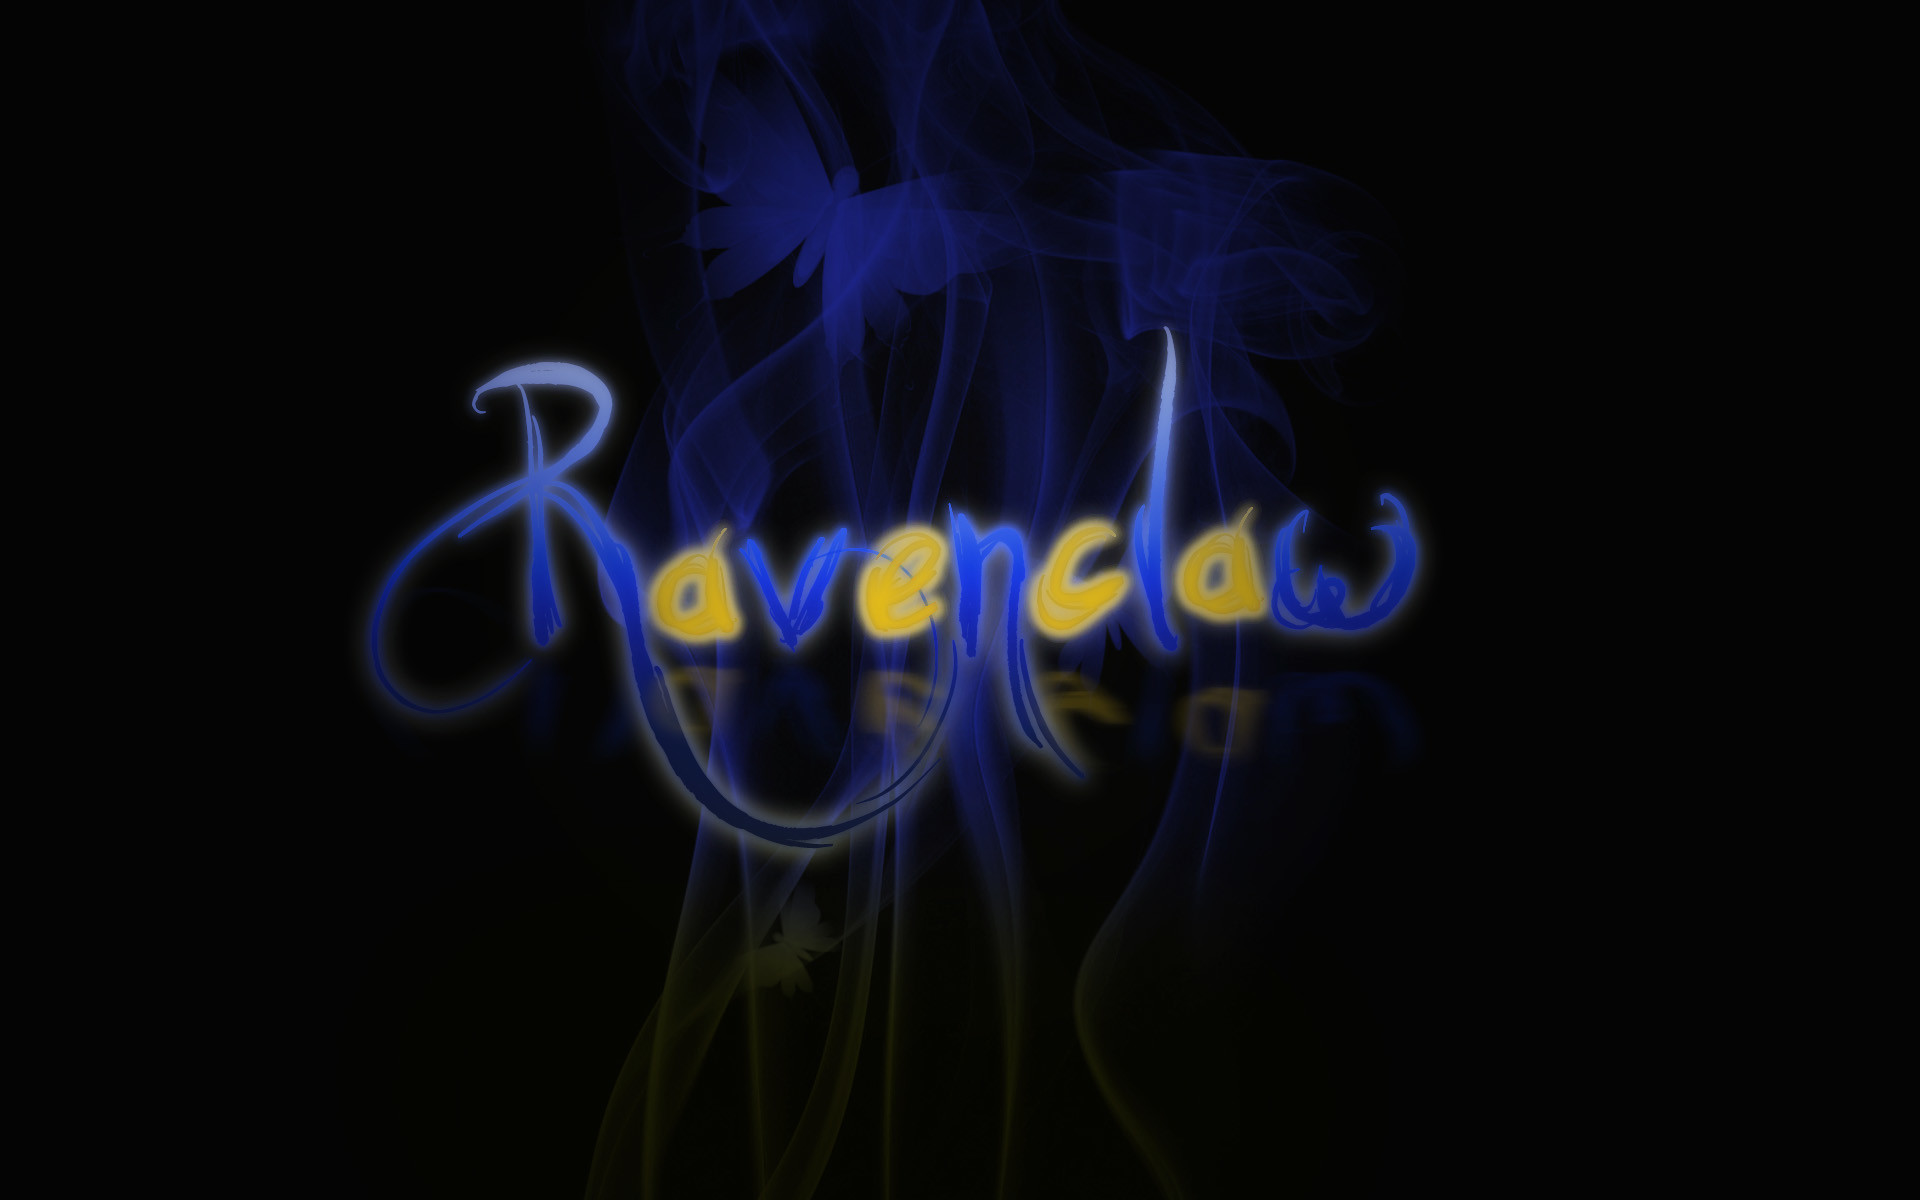 … Harry Potter Iphone Wallpaper Ravenclaw Ravenclaw wallpaper by …